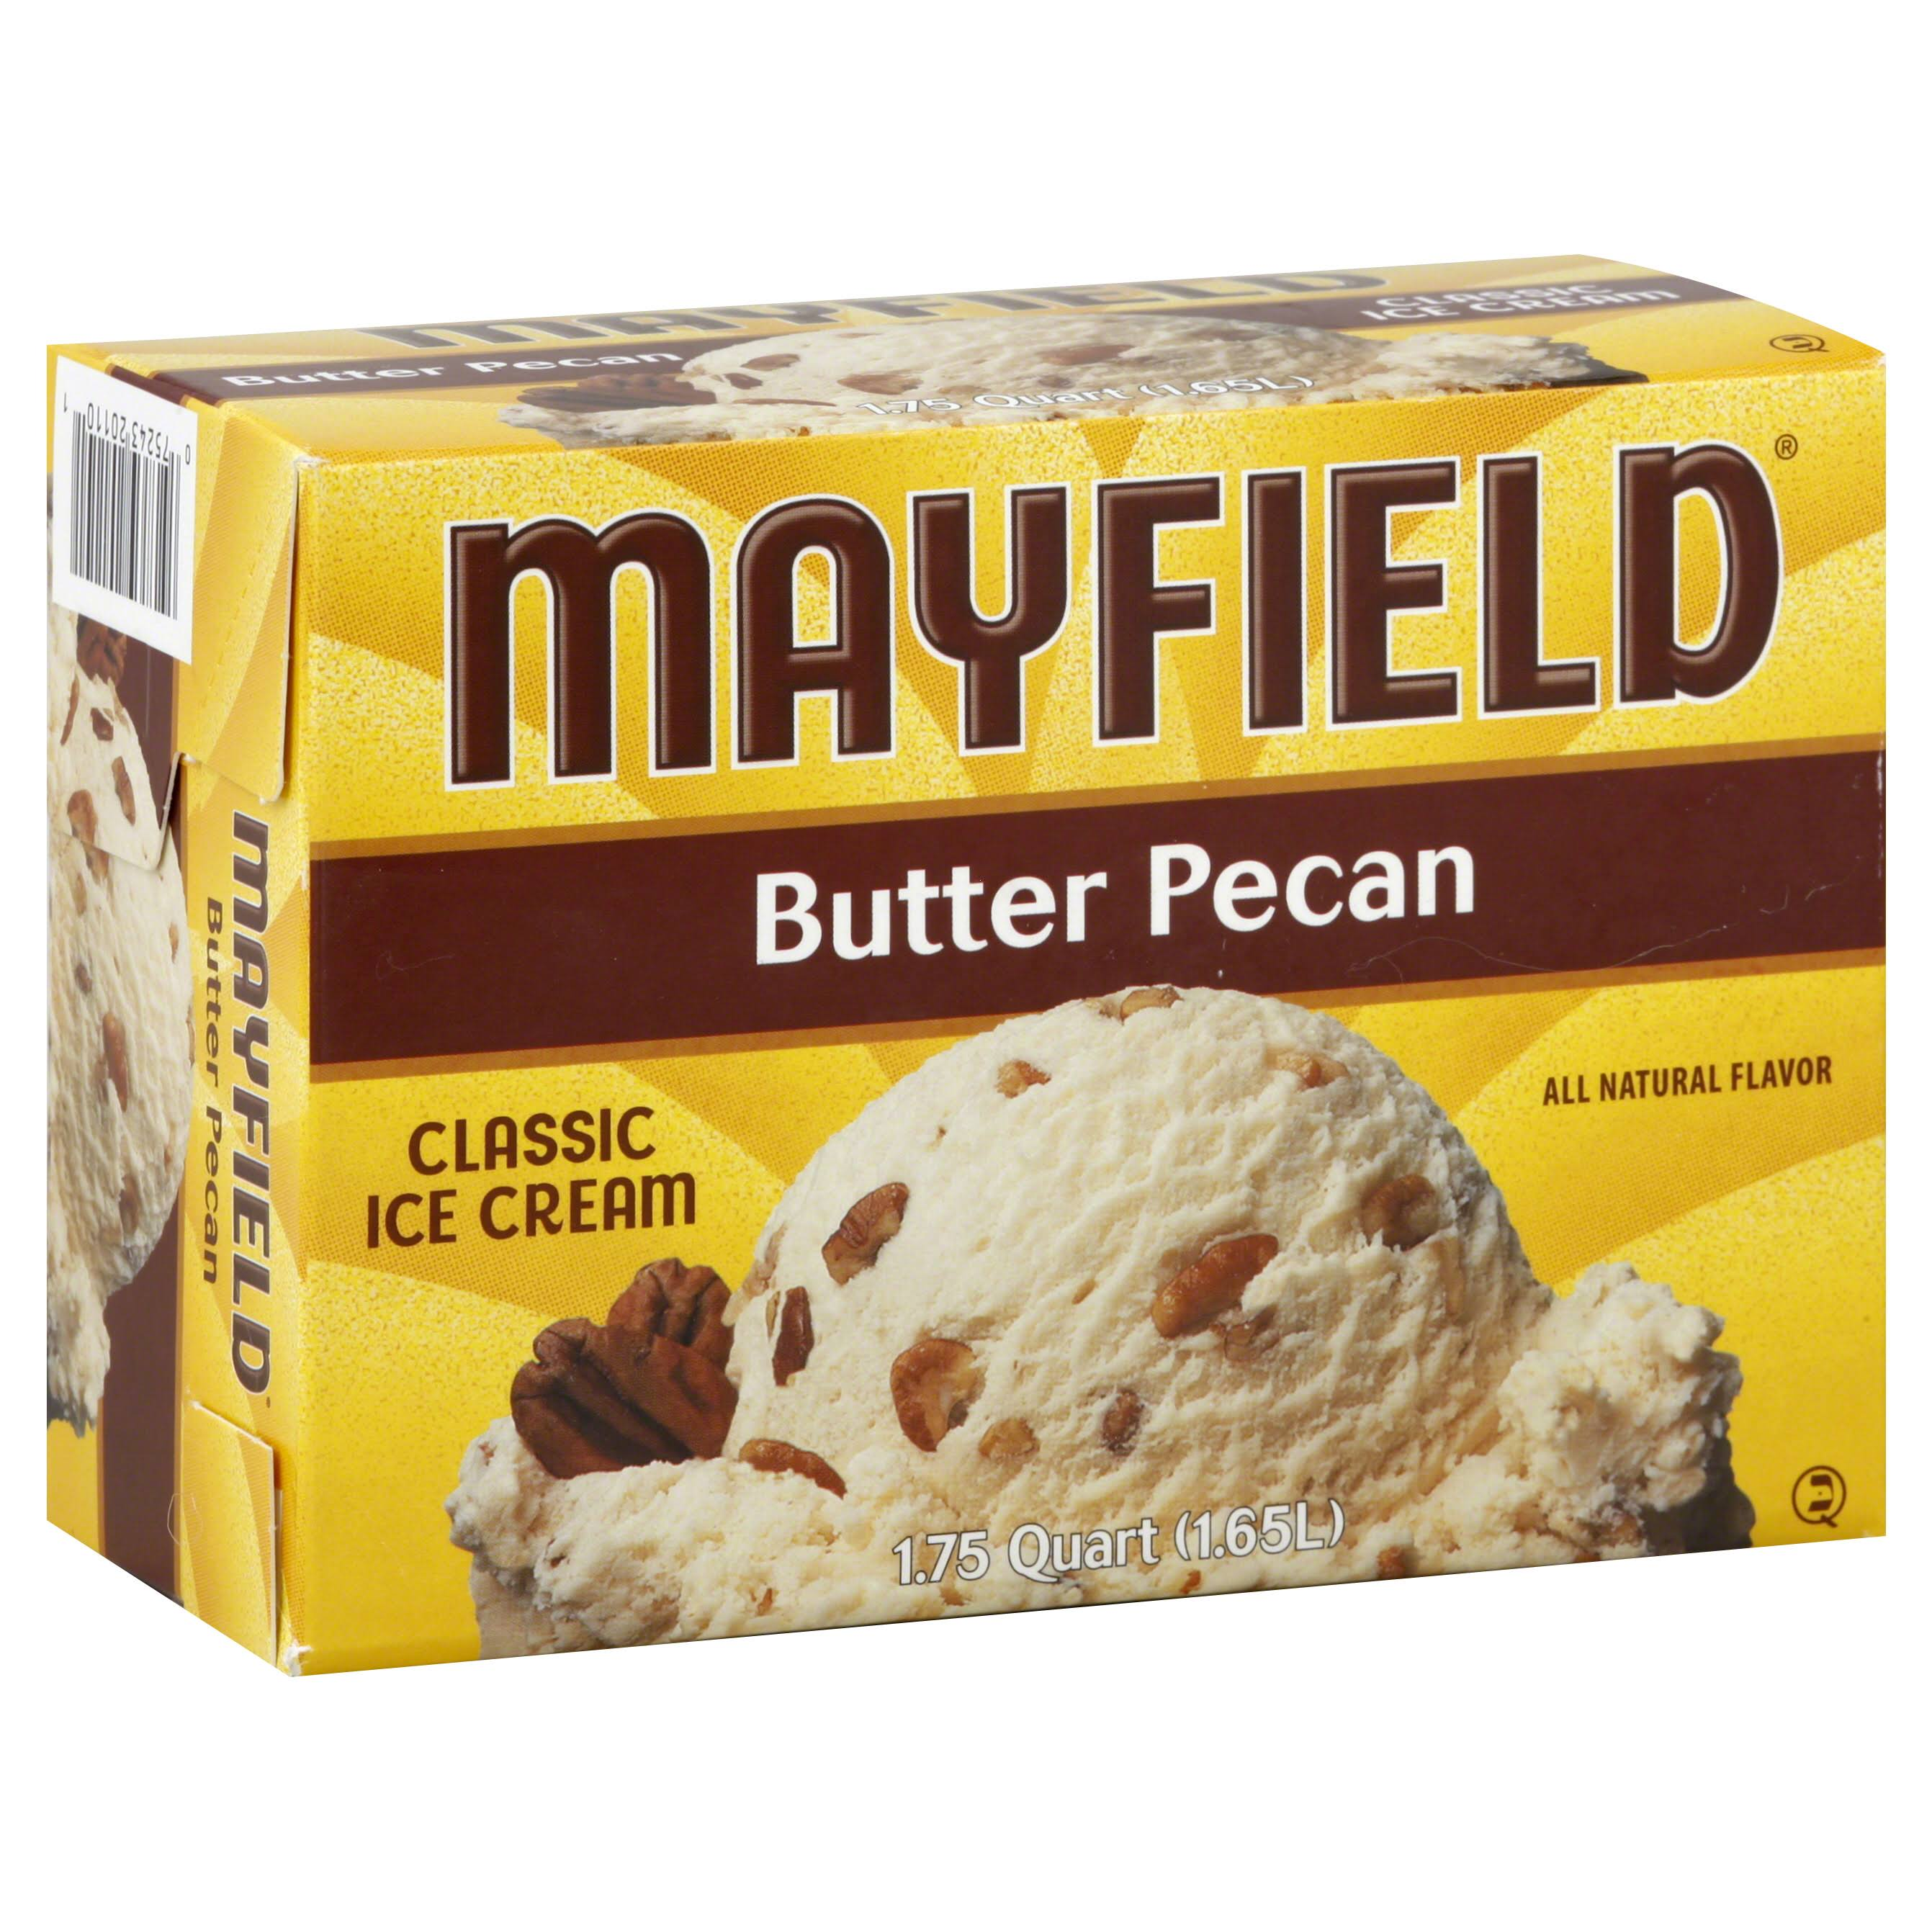 Mayfield Ice Cream - Butter Pecan, 1.65l